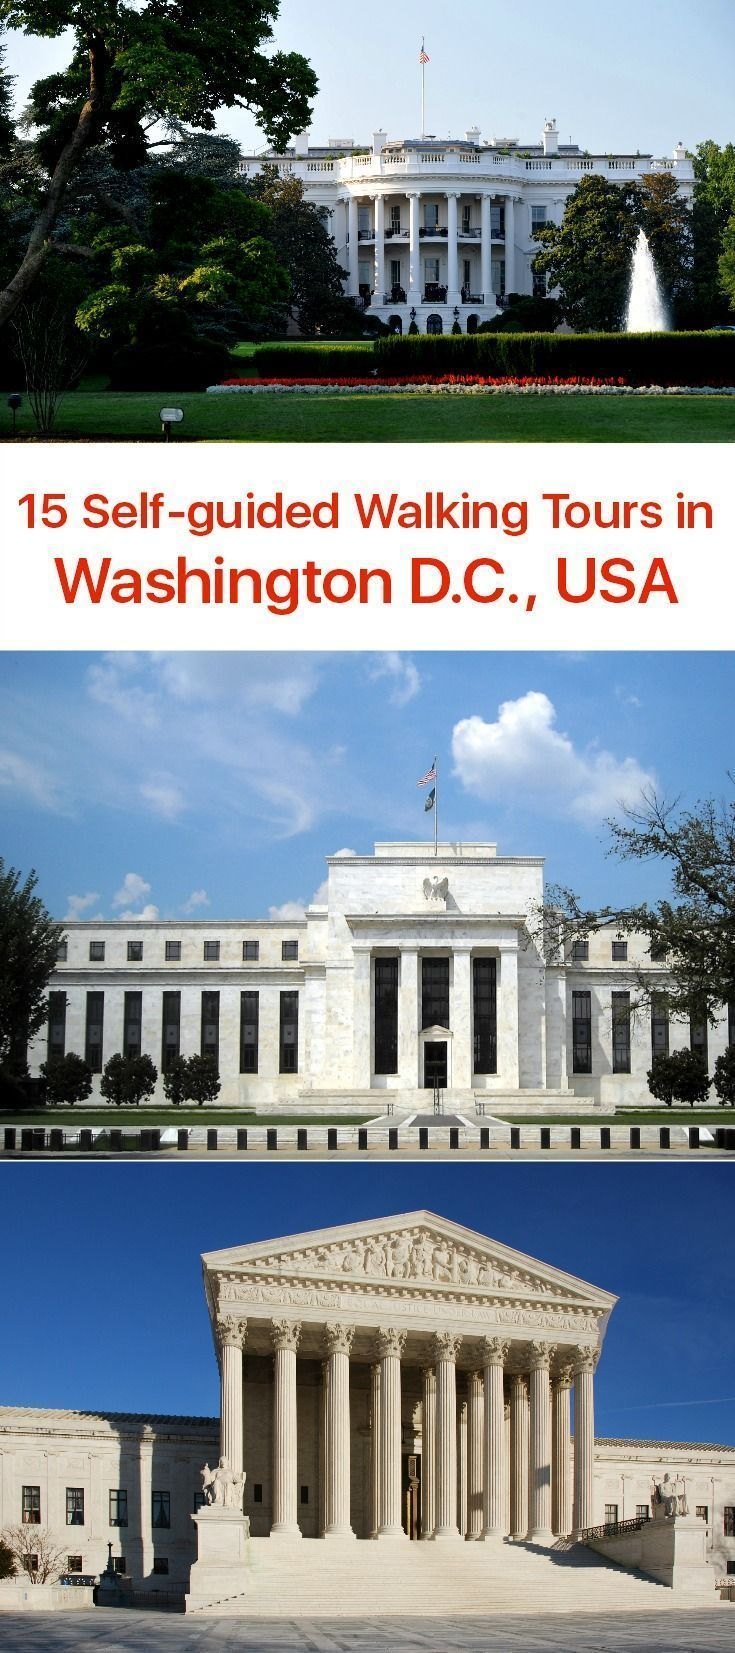 The seat of the U.S. Federal government, Washington D.C. sits on the Potomac River, sandwiched between Maryland and Virginia states. Sites like the U.S. Capitol, White House, Lincoln Memorial, and the Washington Monument put the city among the top-visited places in the United States.